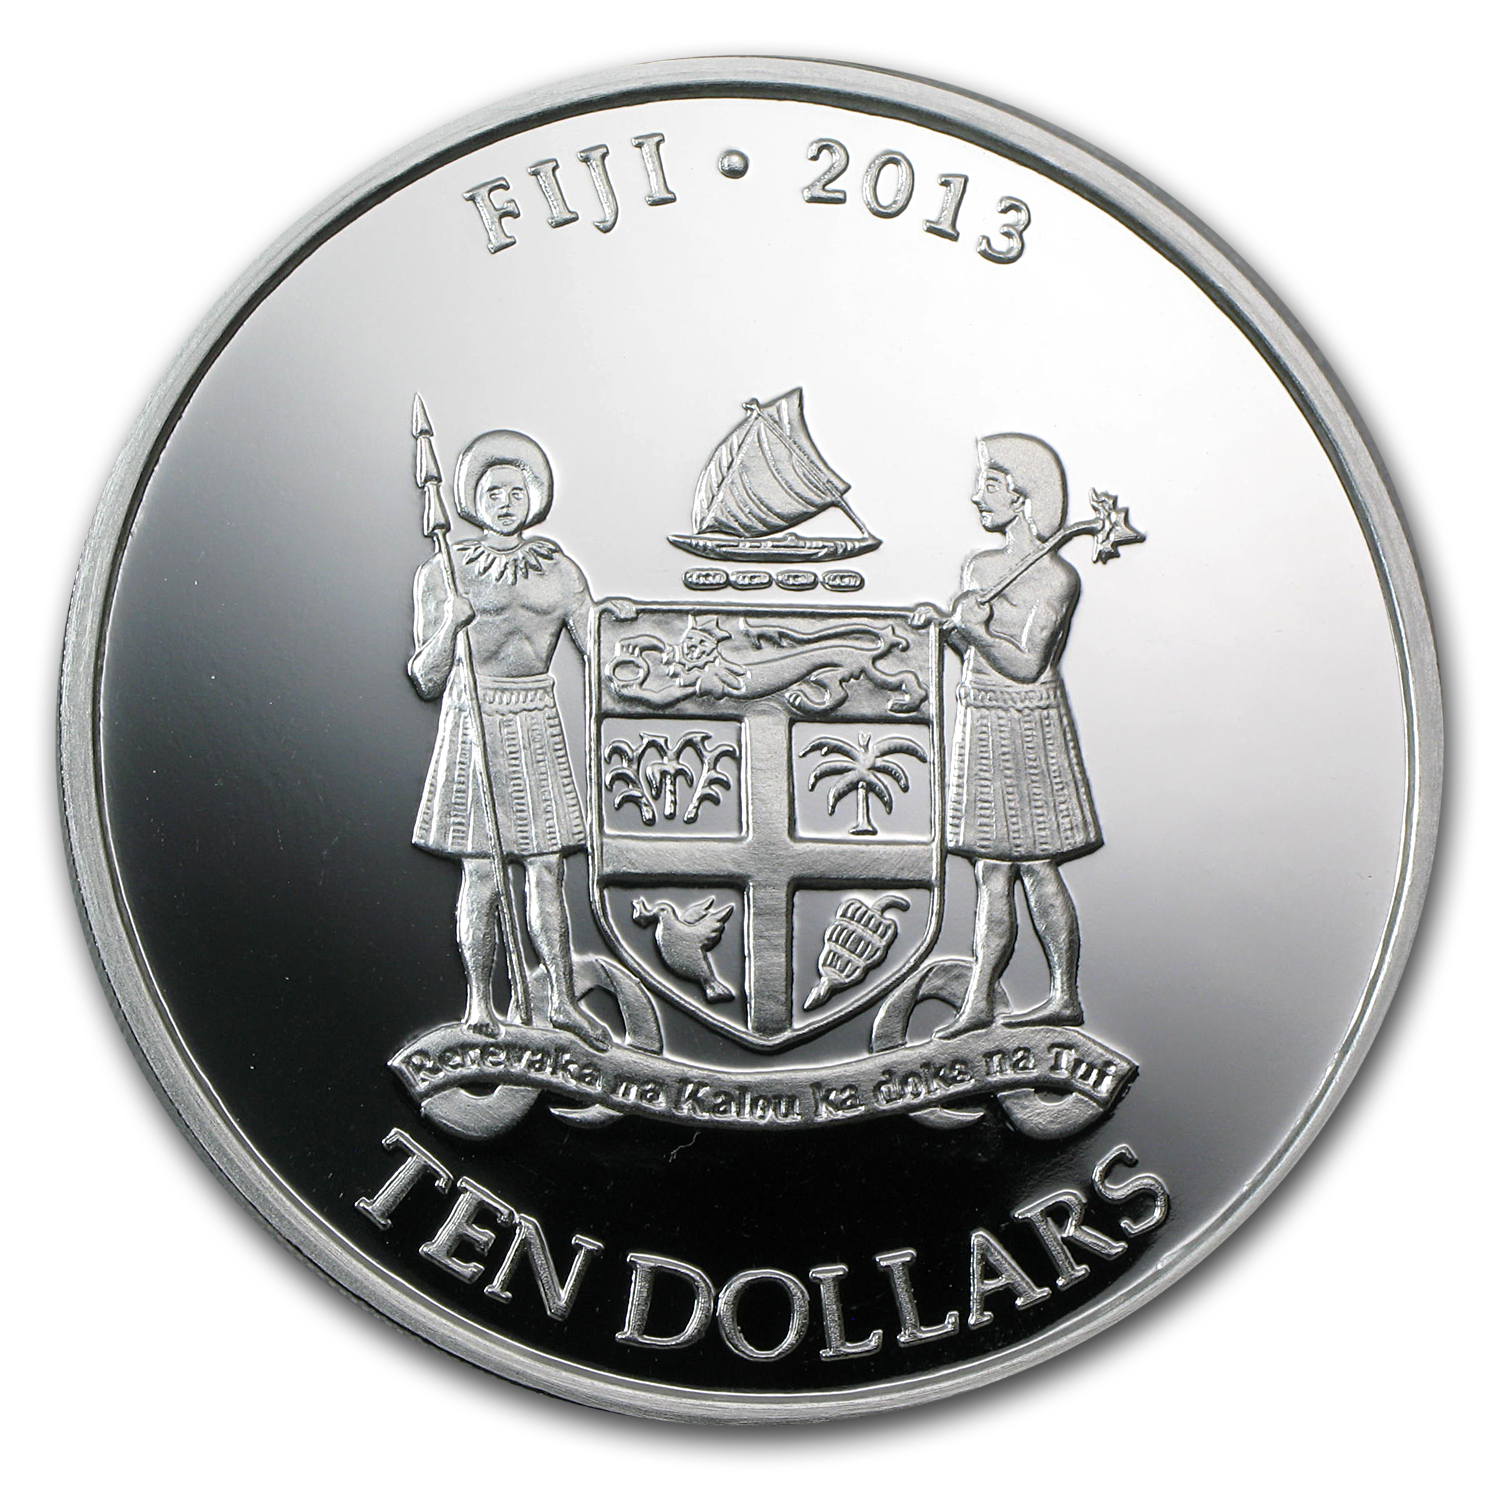 2013 5 oz Silver New Zealand Mint $10 Fiji Taku BU